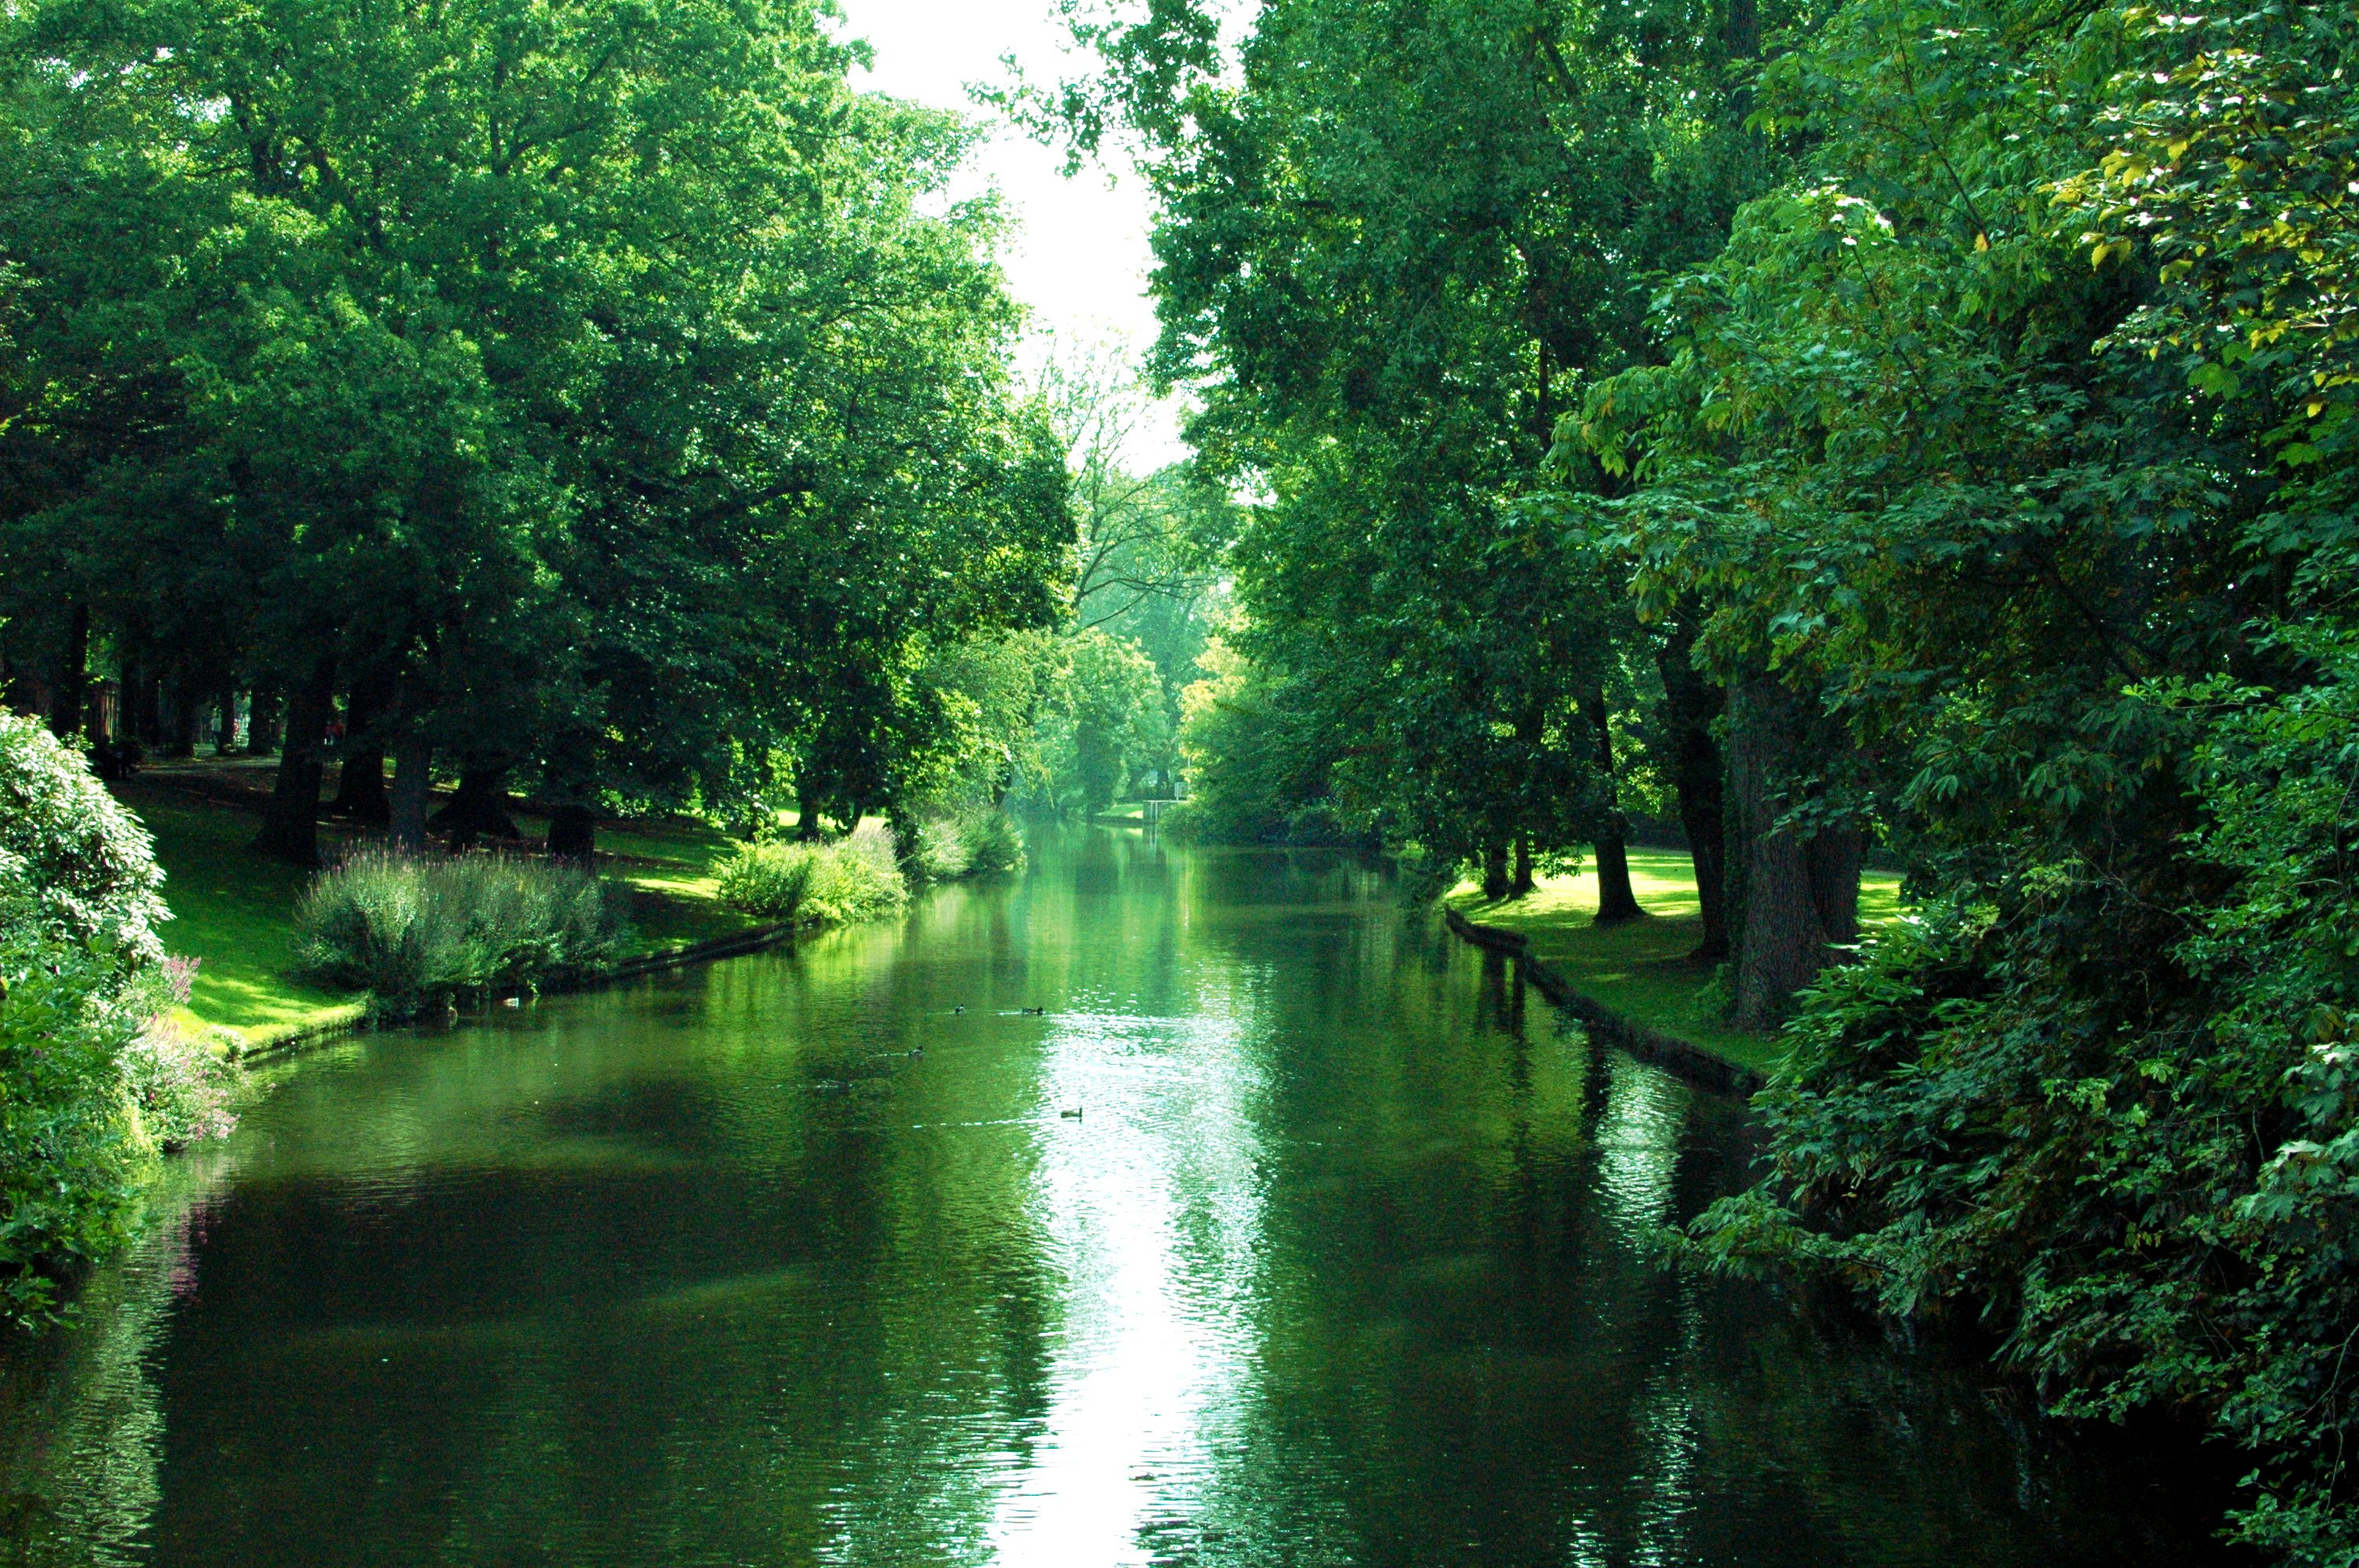 Minnewater Park - A Travel Guide to Bruges, Belgium